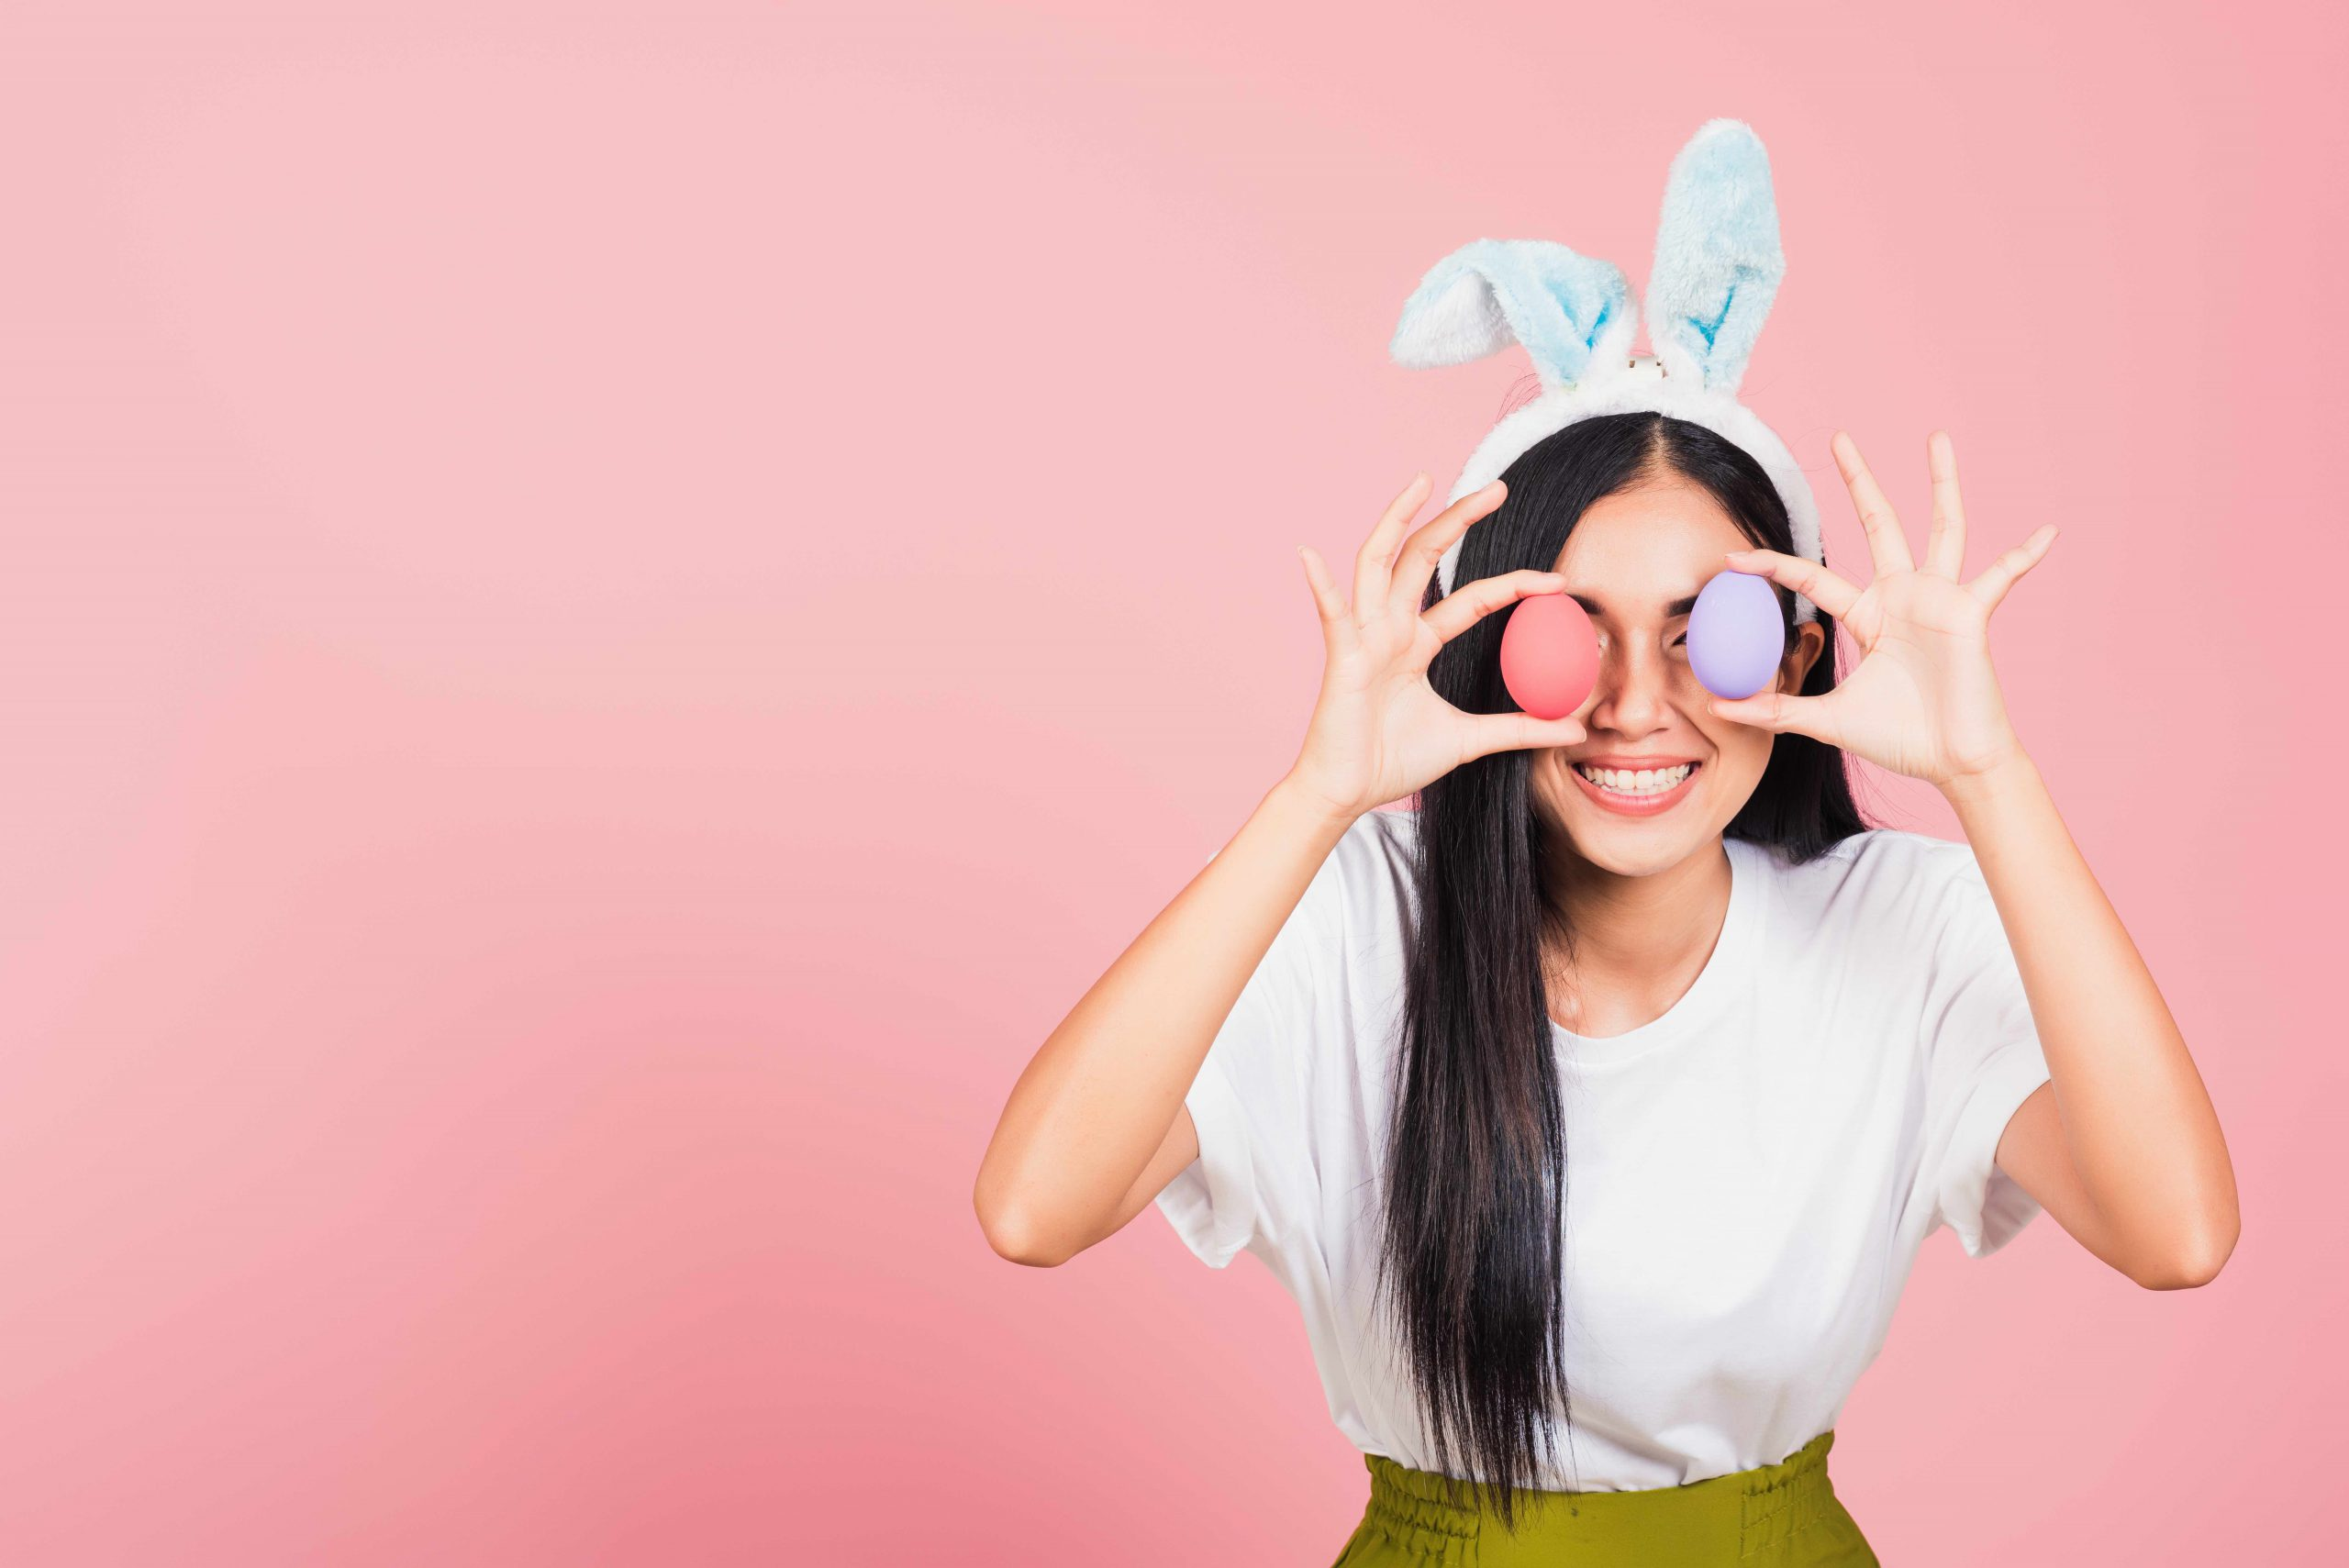 woman smiling wearing rabbit ears holding colorful Easter eggs front eyes